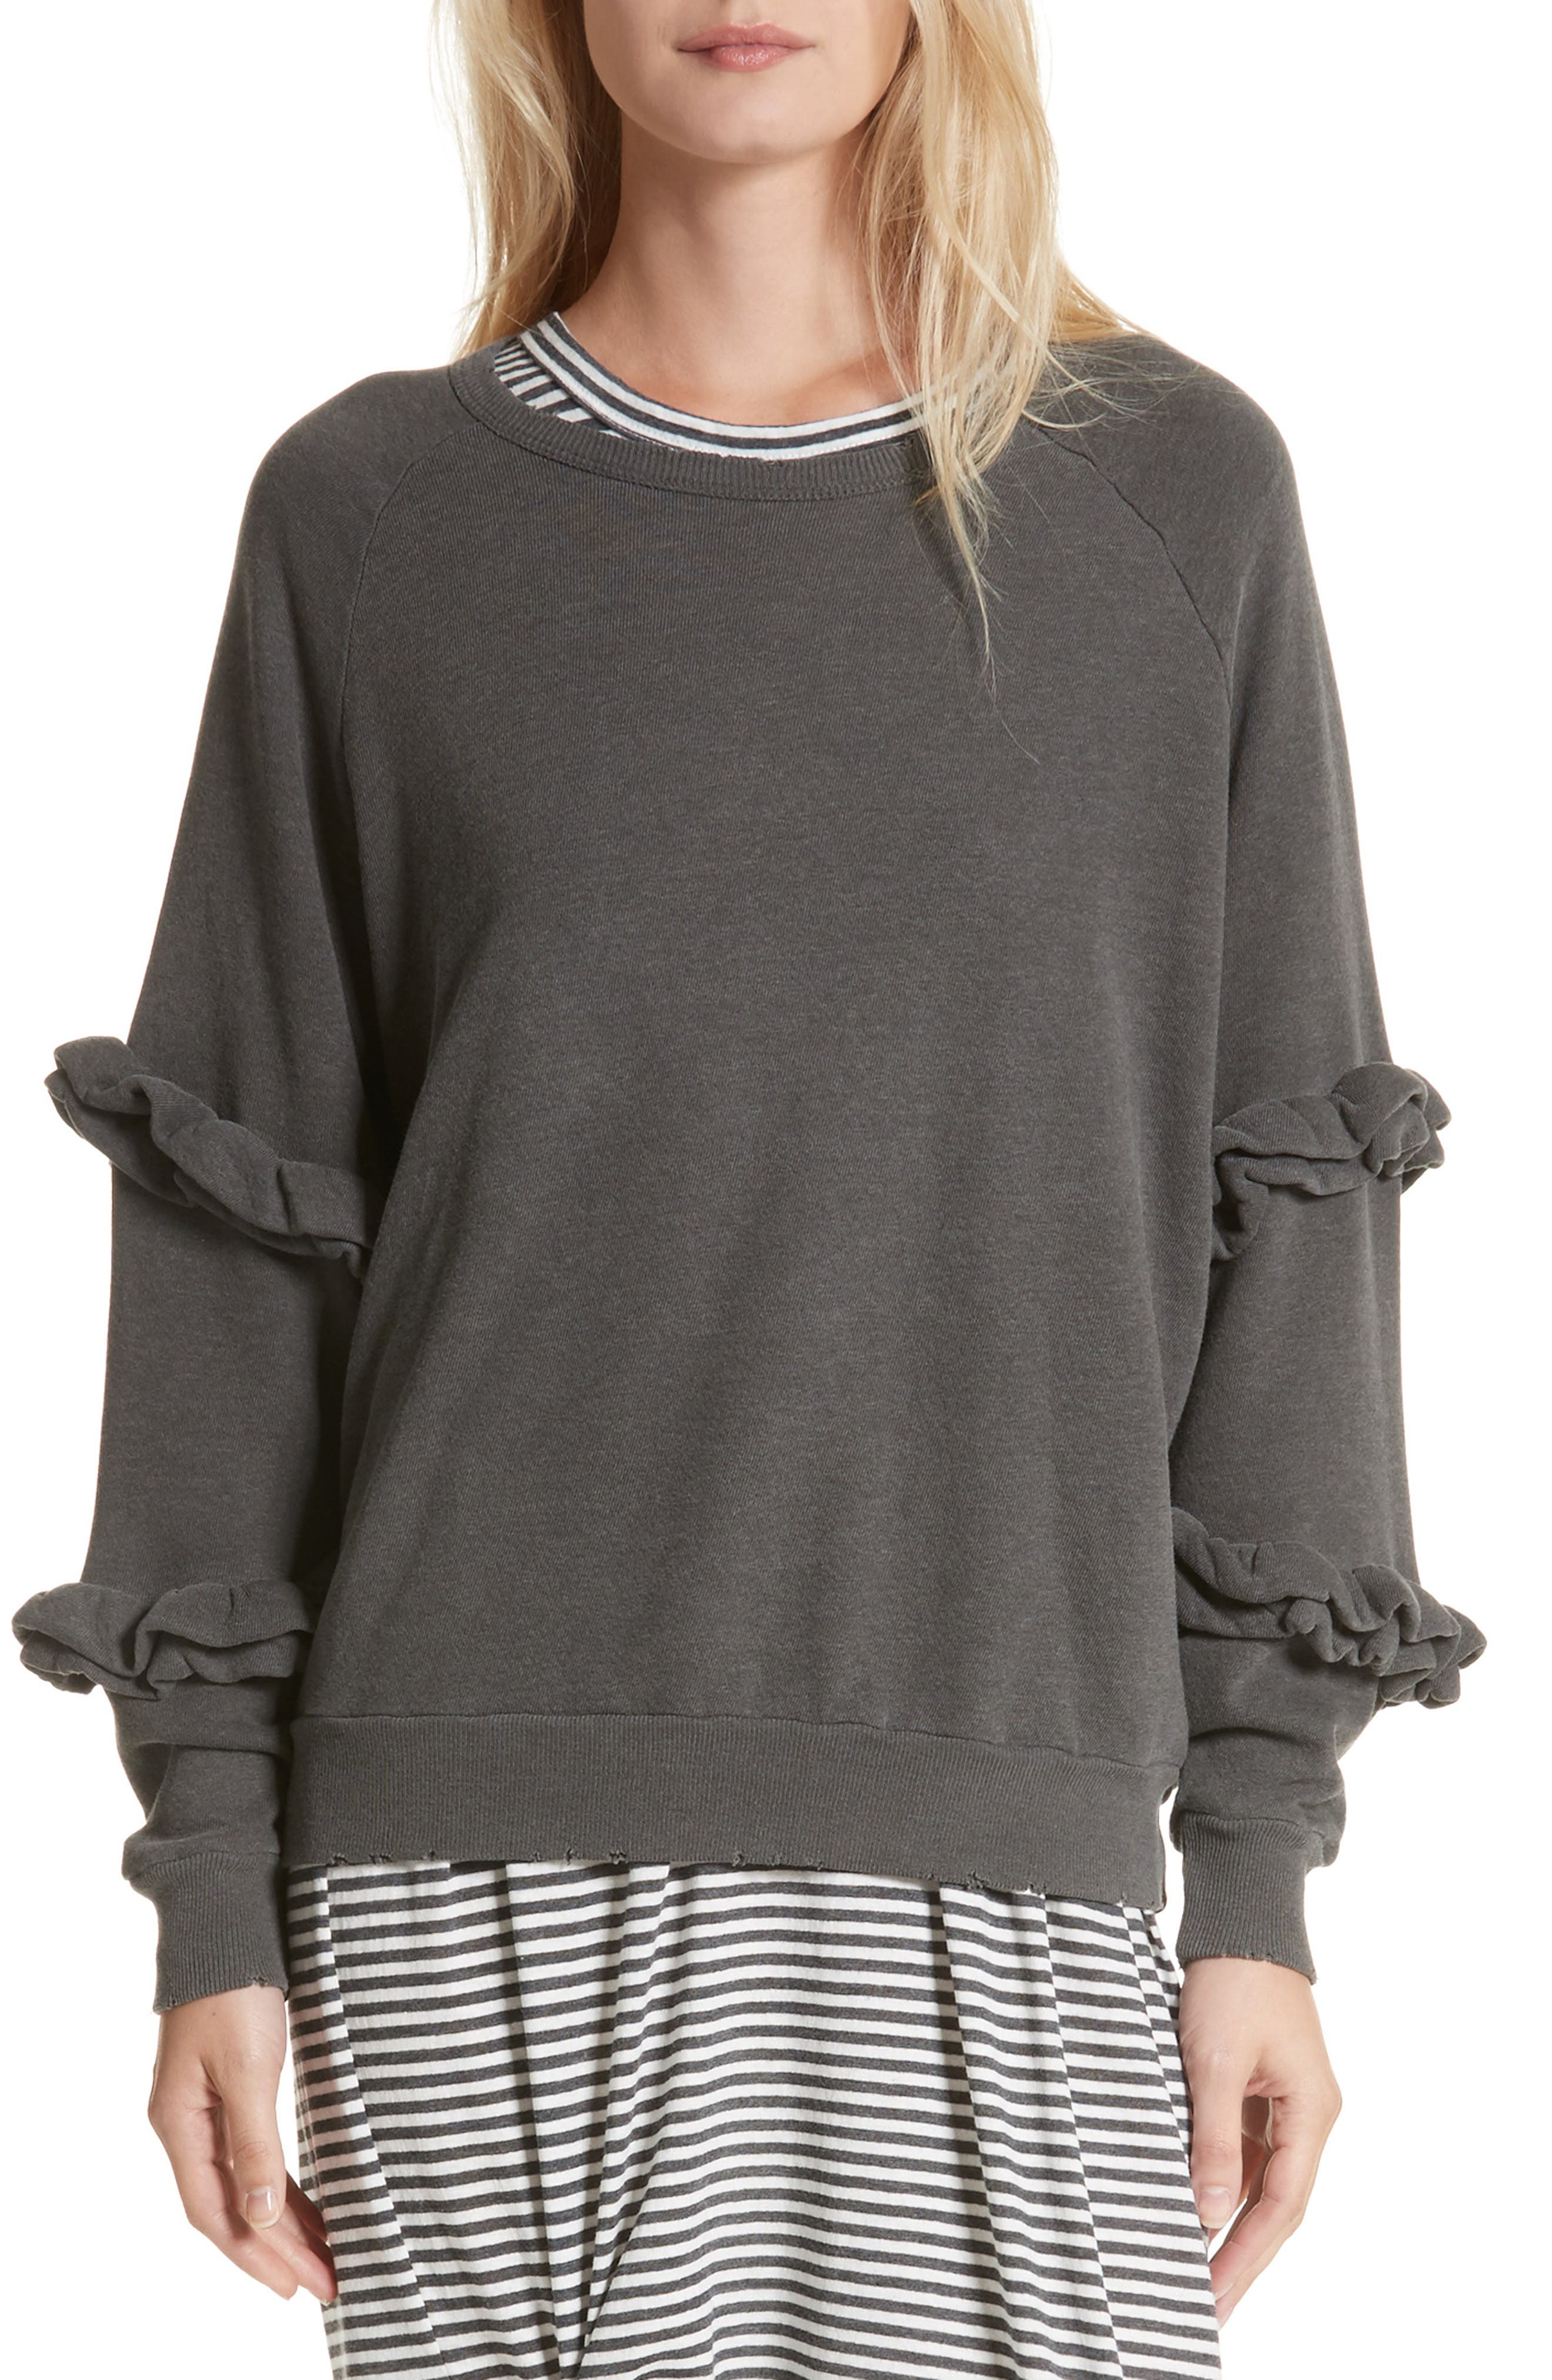 Alternate Image 1 Selected - THE GREAT. The Frill Sleeve Sweatshirt